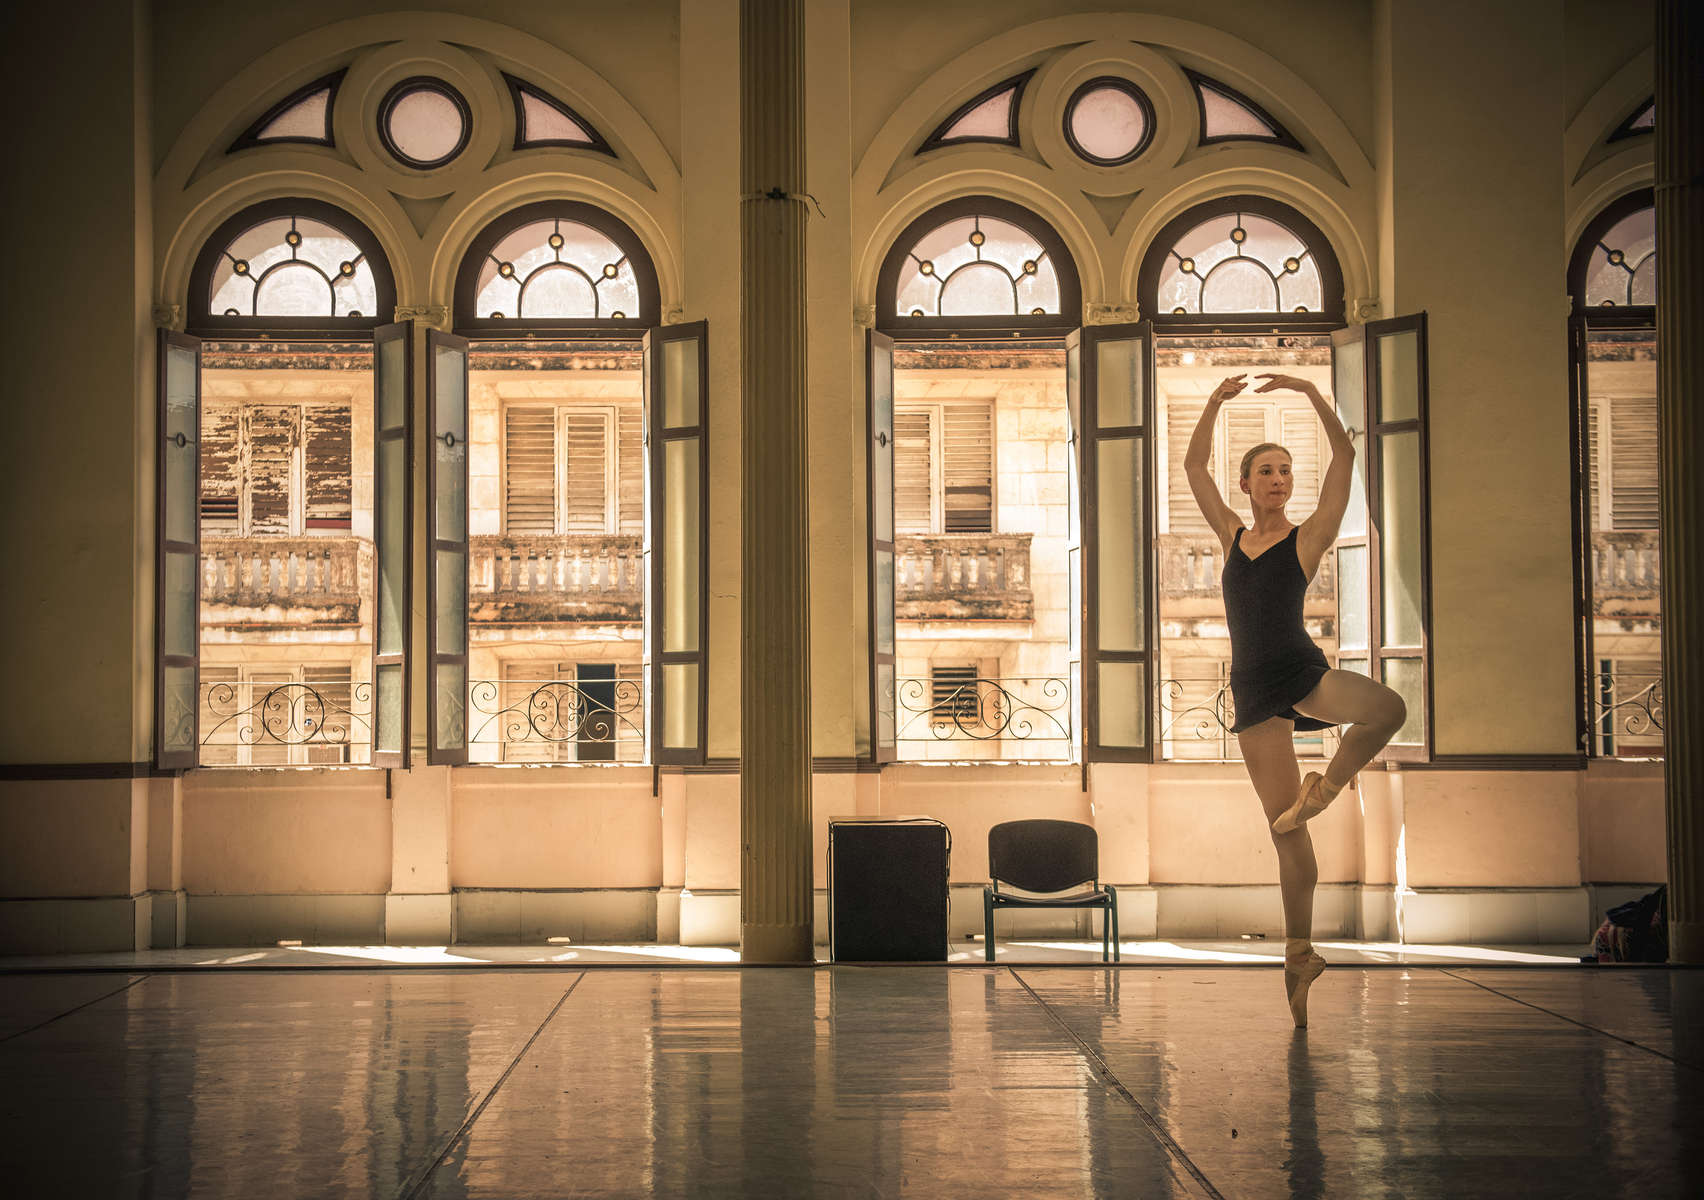 Catherine Conley practices by herself at the Cuban National School of Ballet in Havana, March 13, 2017. ©2018 Alex Garcia